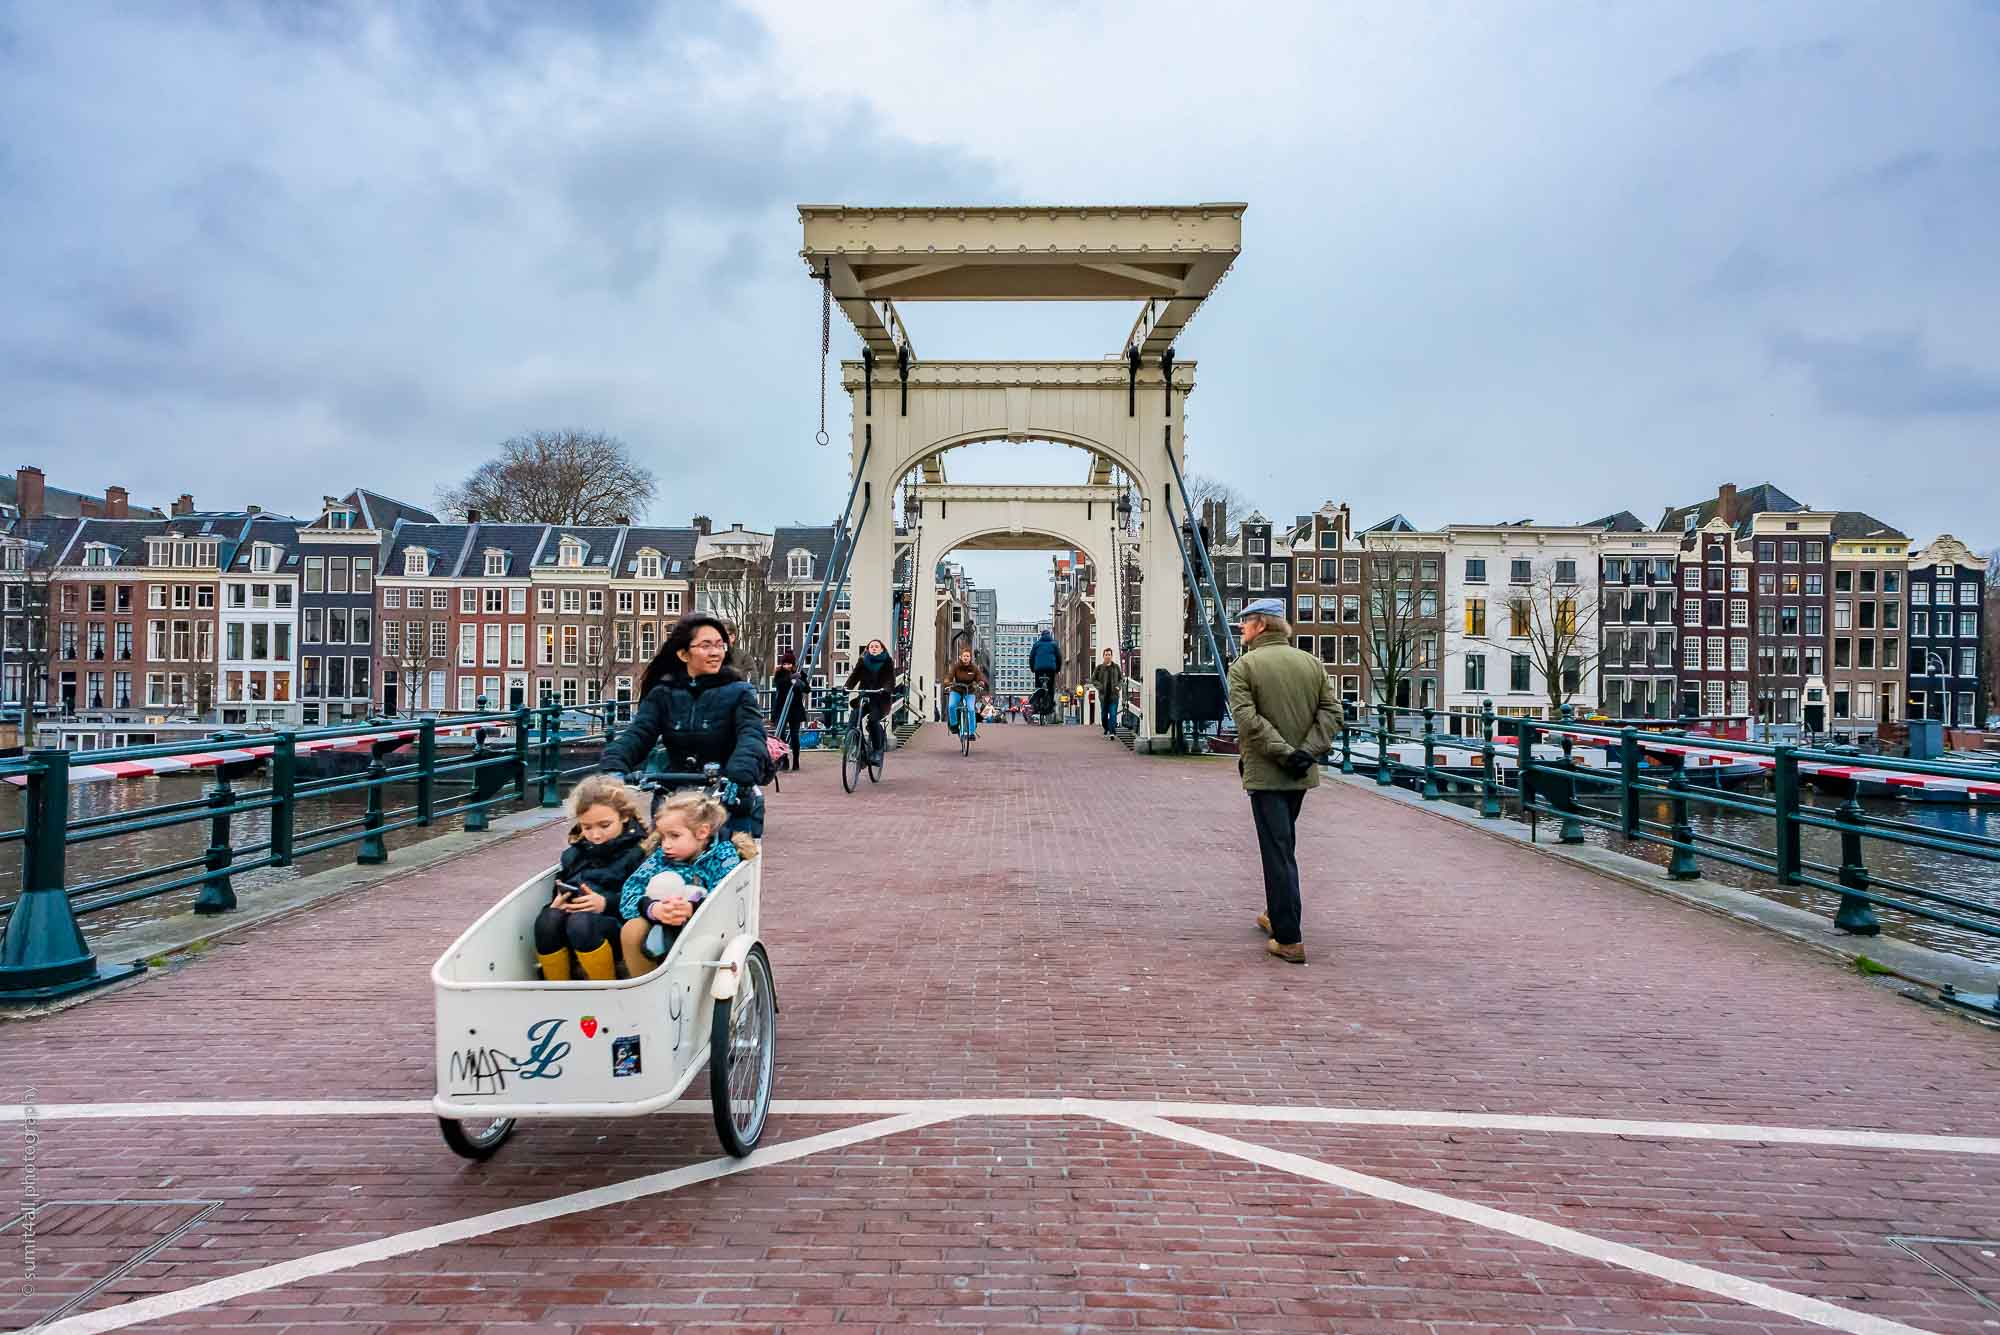 A Bakfiet On The Magere Brug in Amsterdam